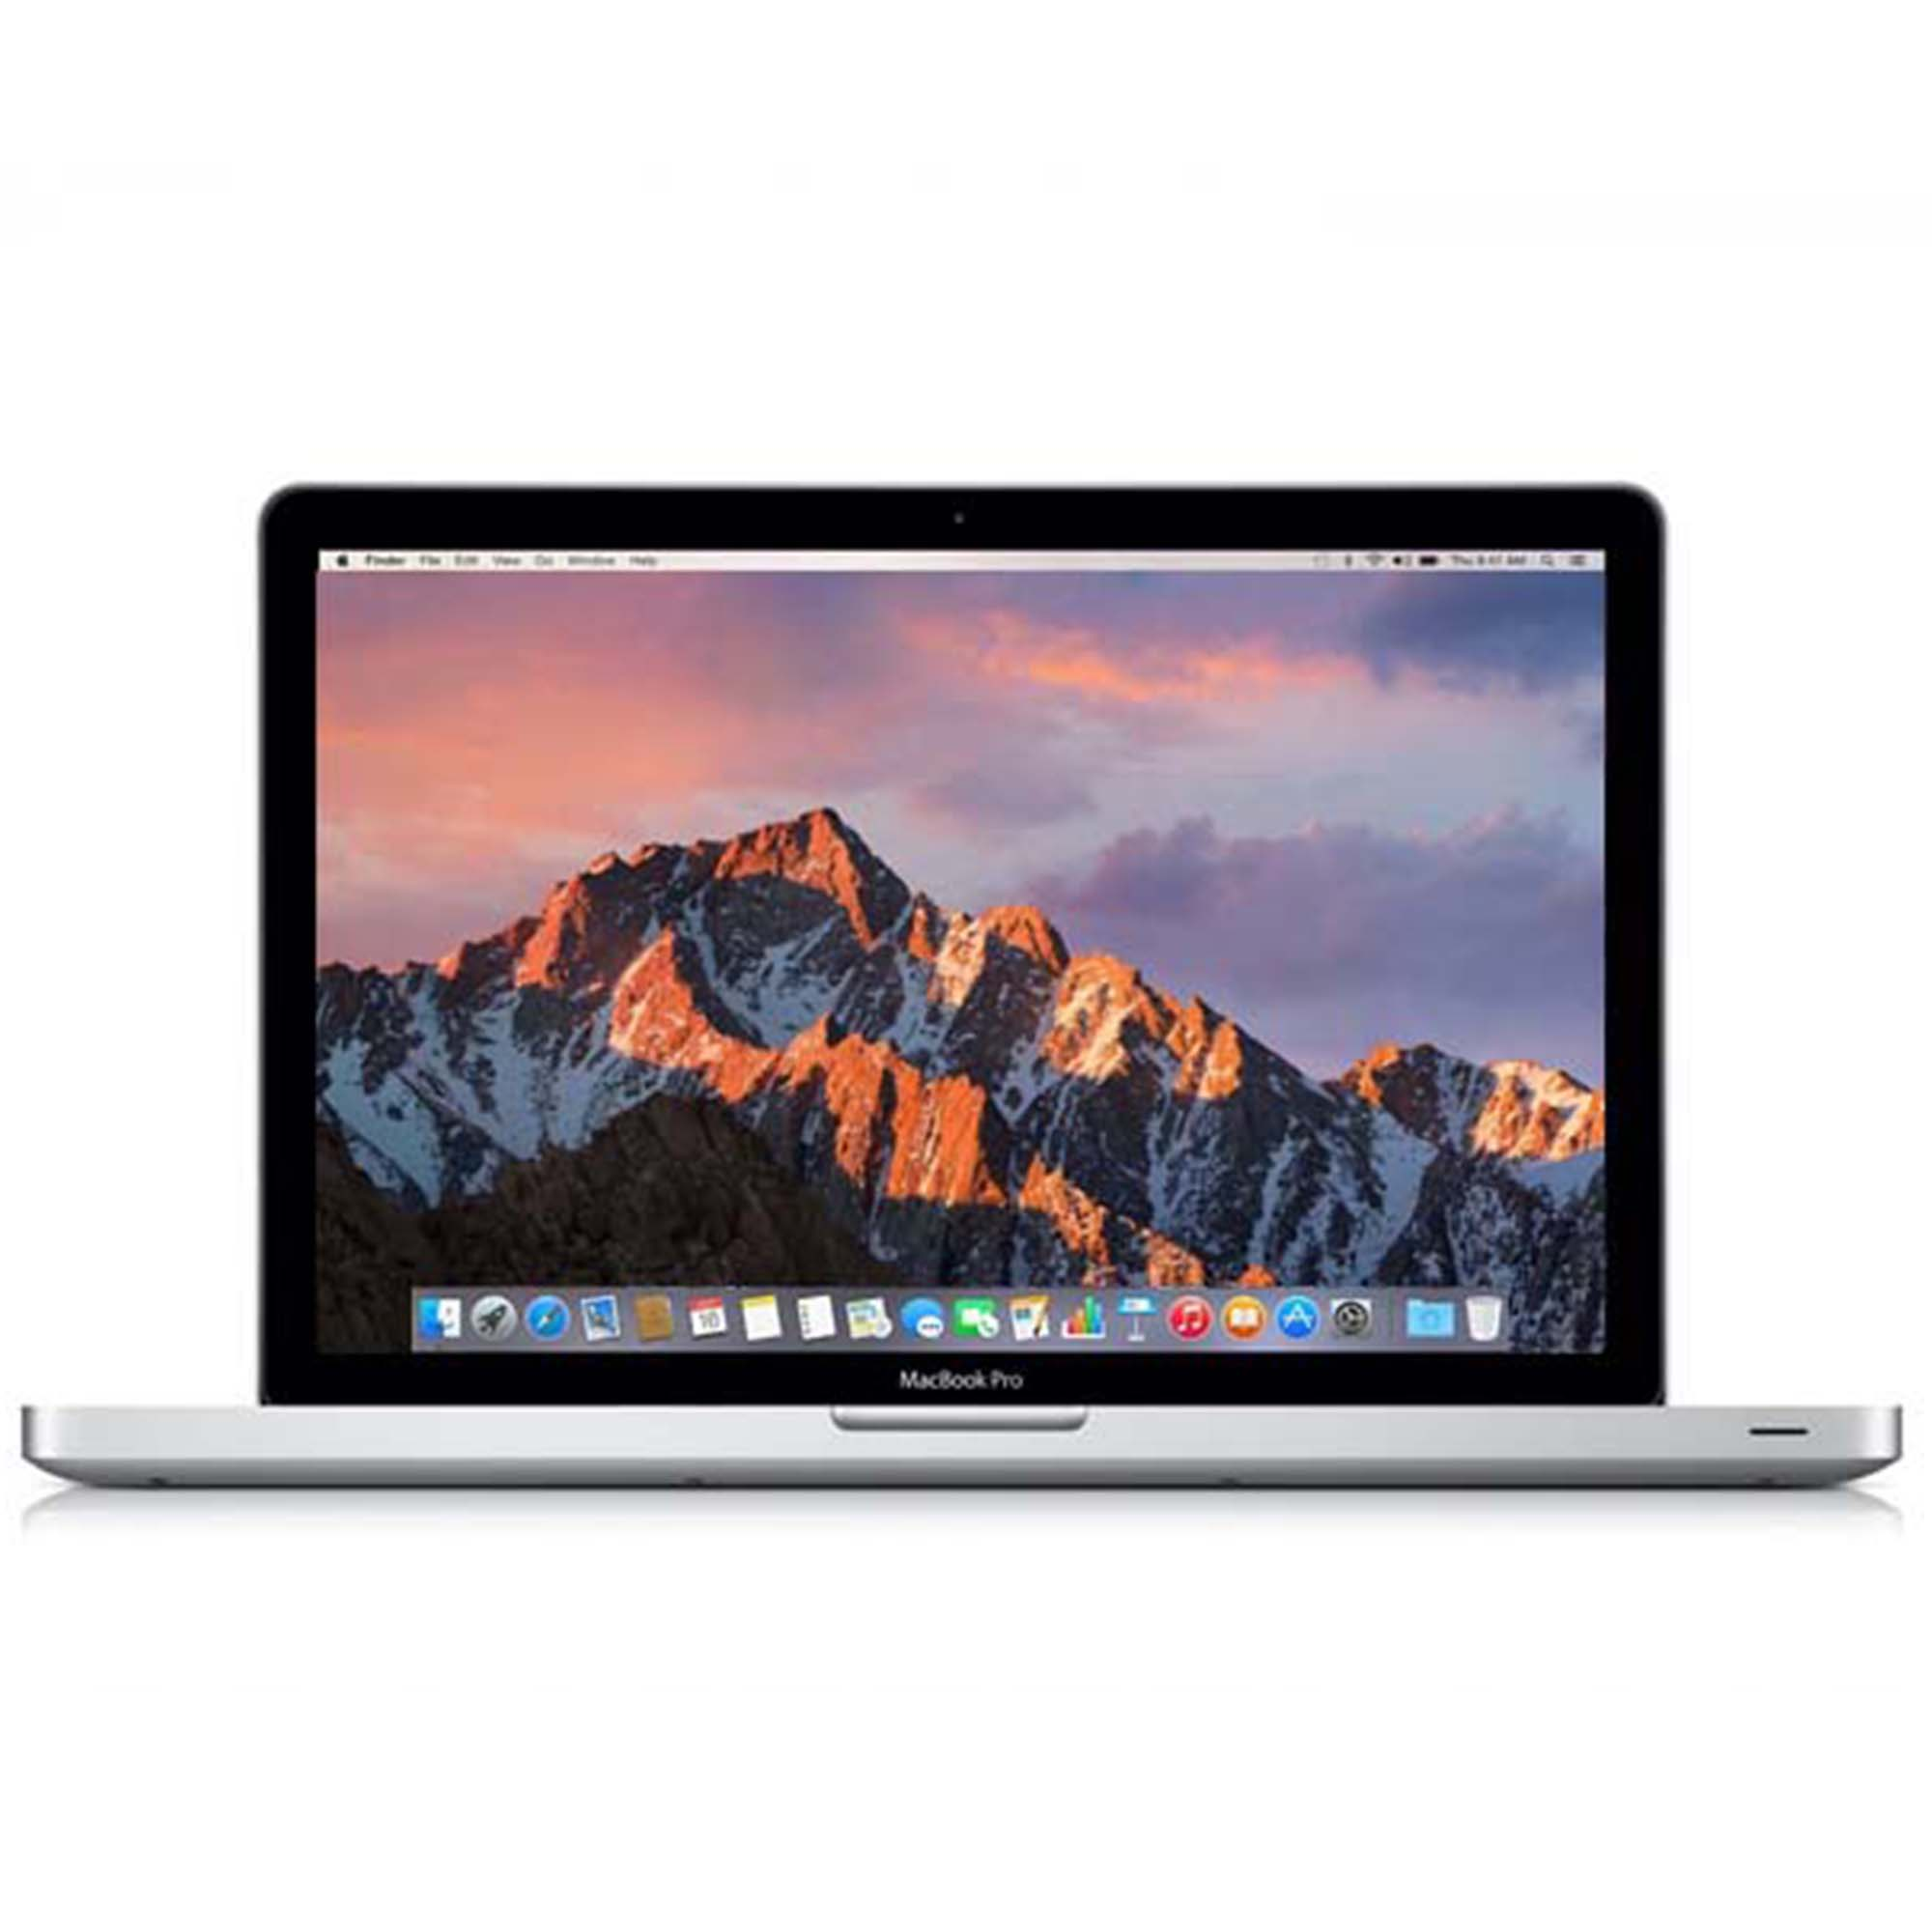 Apple MacBook Pro 15.4-Inch Laptop Intel Core i7 2.66GHz   8GB Memory   500GB SSHD (Solid State Hybrid) Drive... by Apple